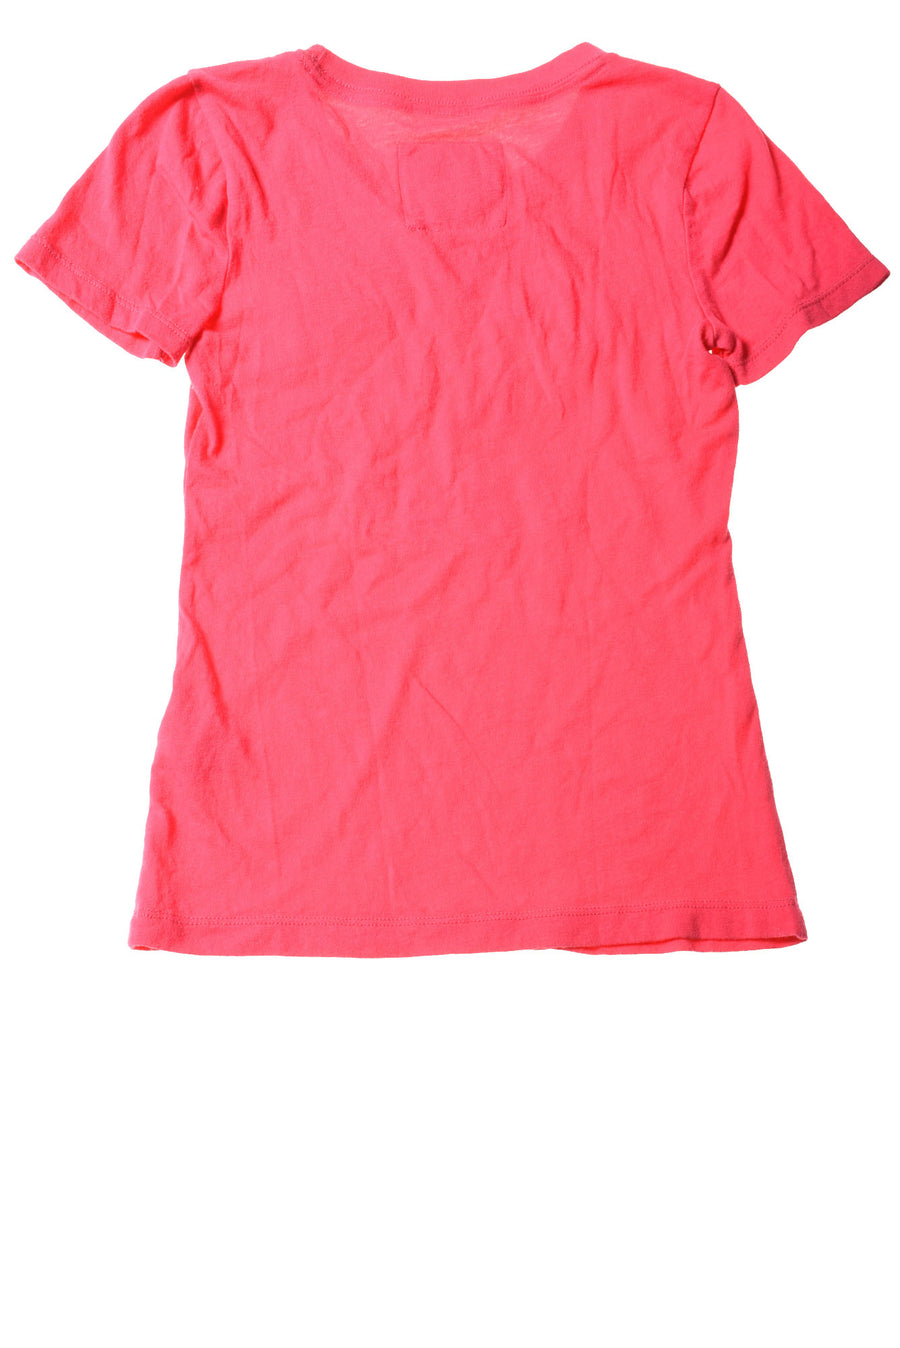 USED abercrombie kids Girl's Top Medium Pink